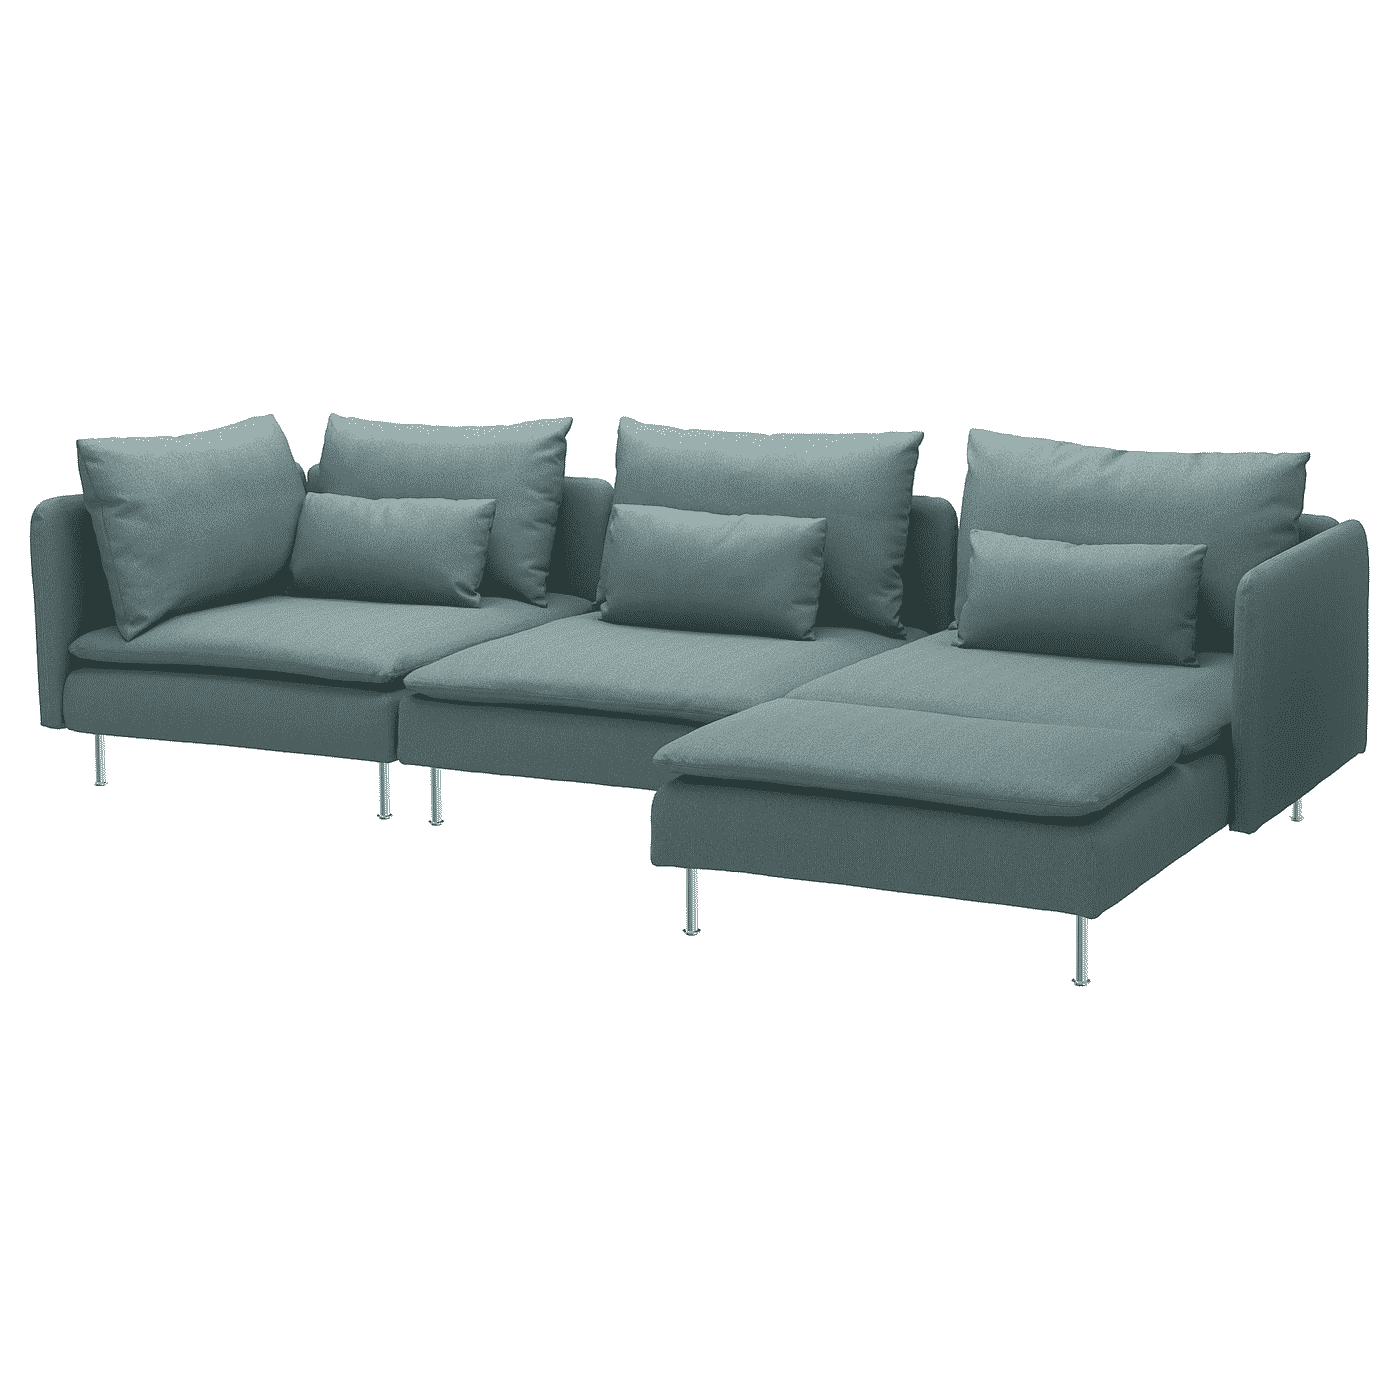 Soderhamn Sectional